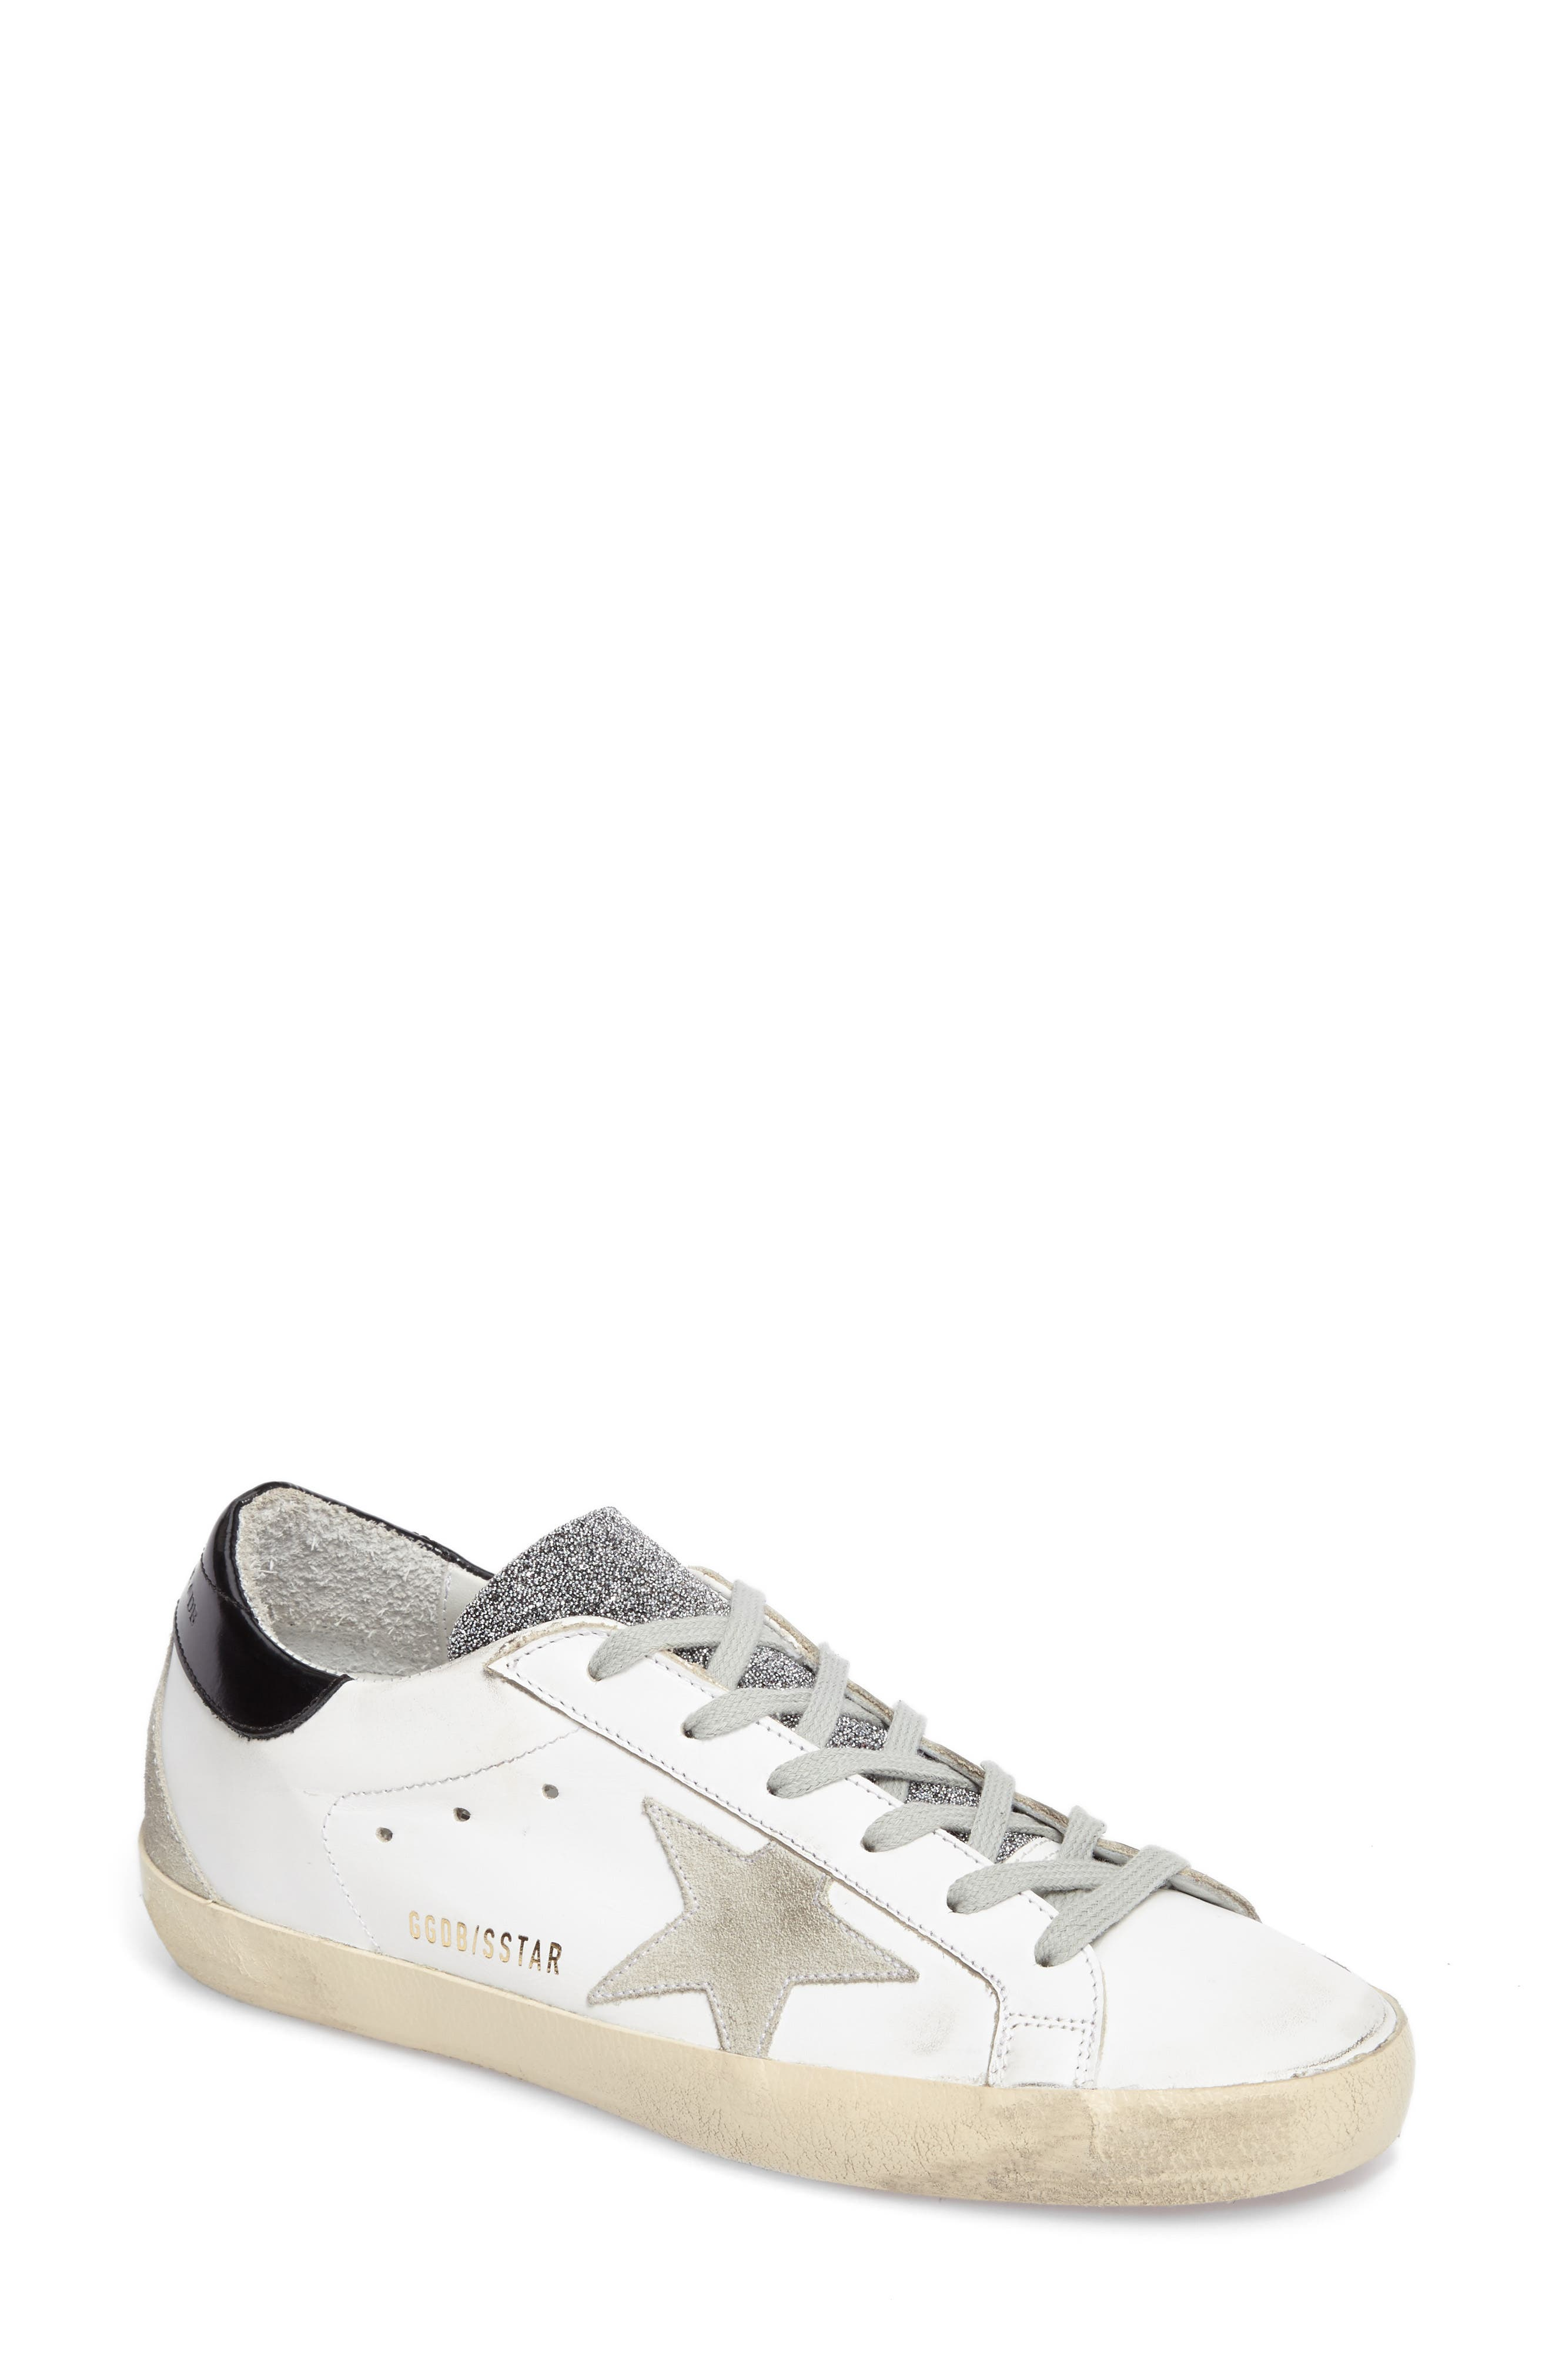 Superstar Low Top Sneaker,                         Main,                         color, 100